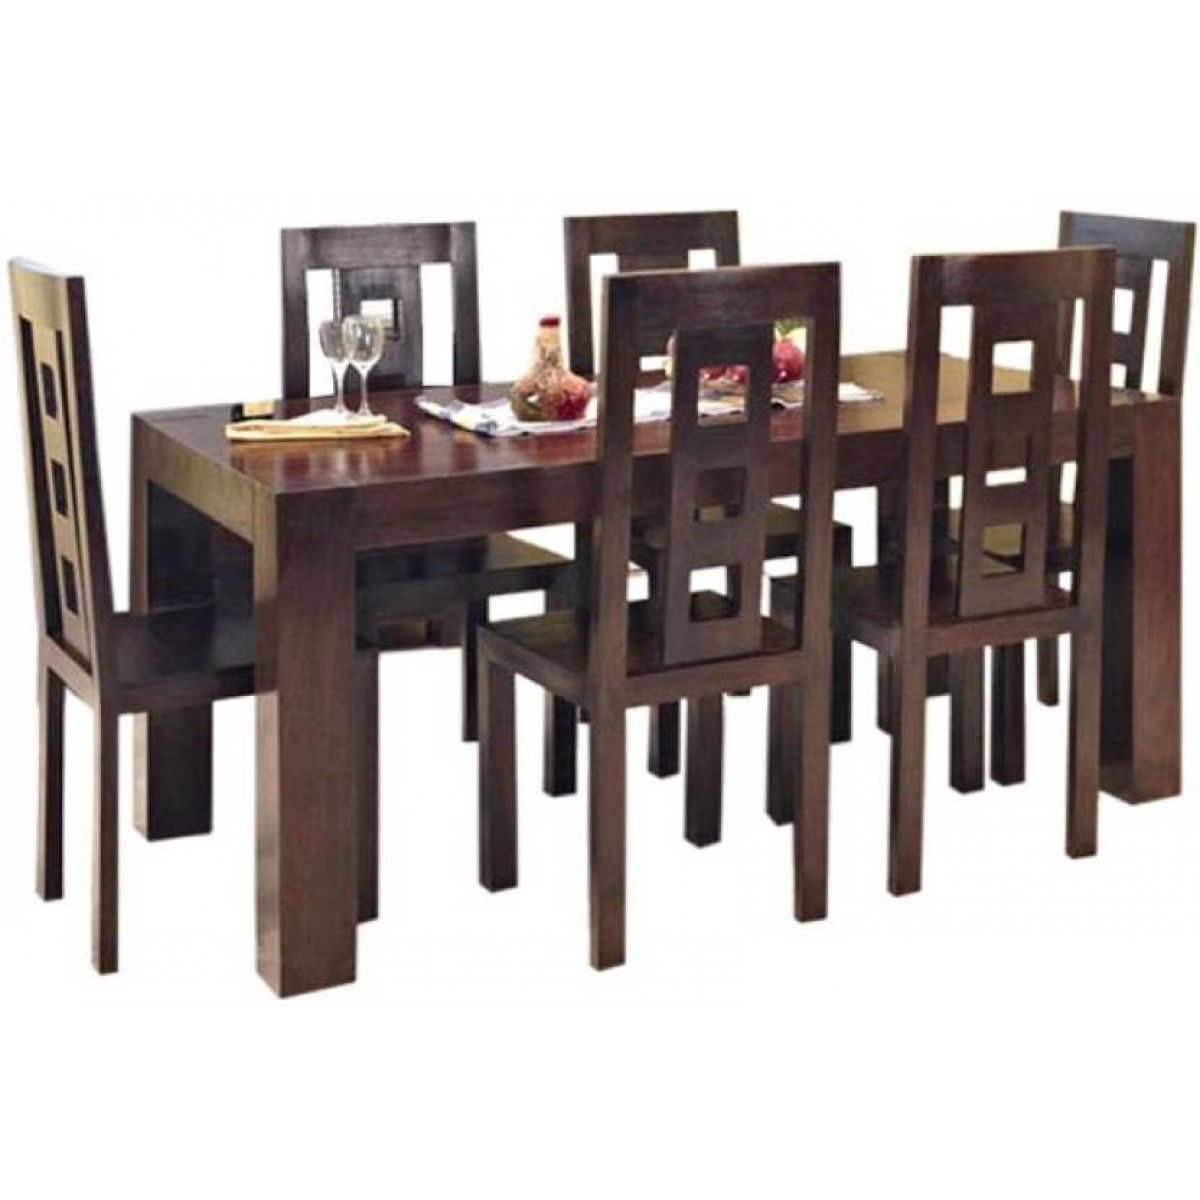 Gorevizon Walnut Rosewood Dining Table Set 6 Seater Set Wooden Dining Table Designs Dining Table Design Modern Dining Table Design